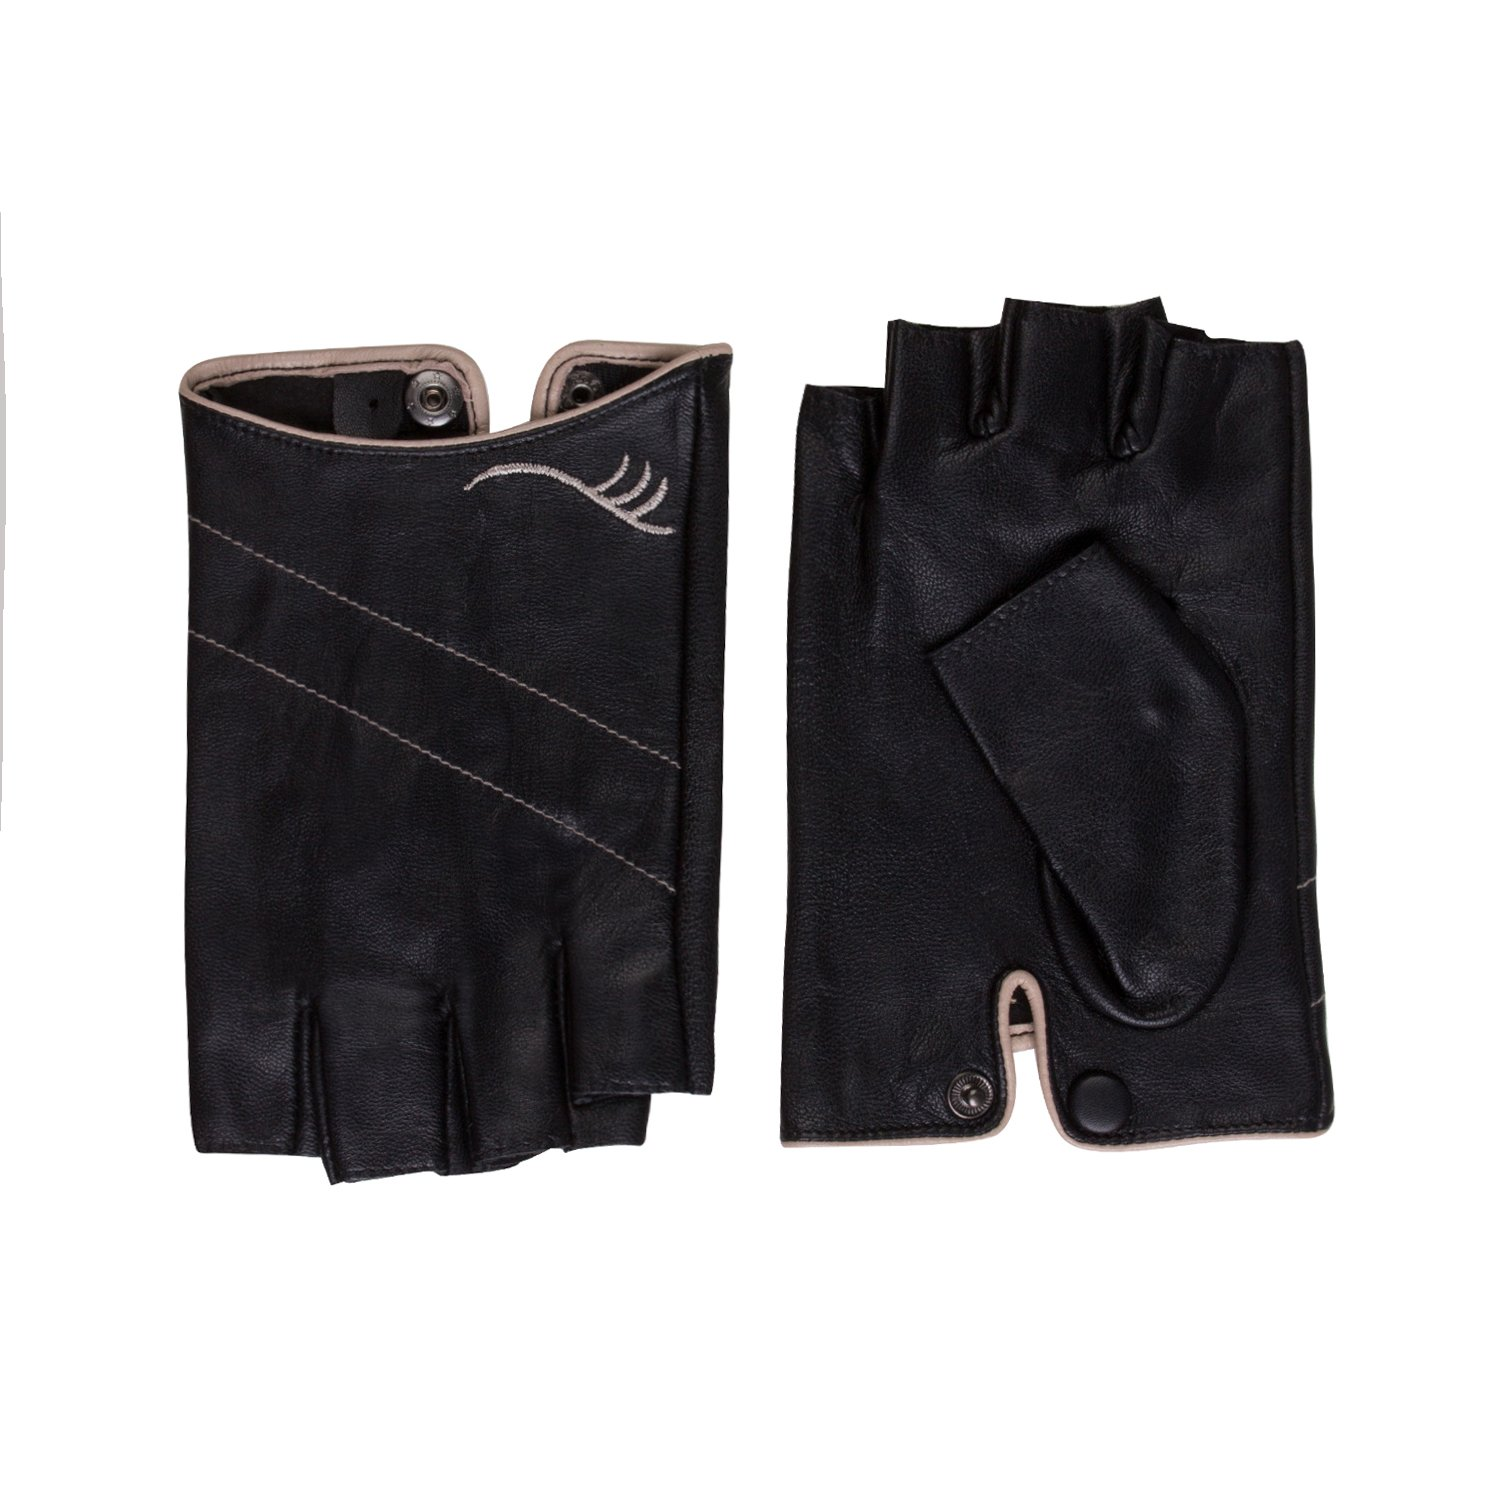 Fioretto Womens Sexy Fingerless Leather Gloves Half Finger Driving Motorcycle Cycling Unlined Ladies Leather Gloves Women's Gift Black M by Fioretto (Image #5)